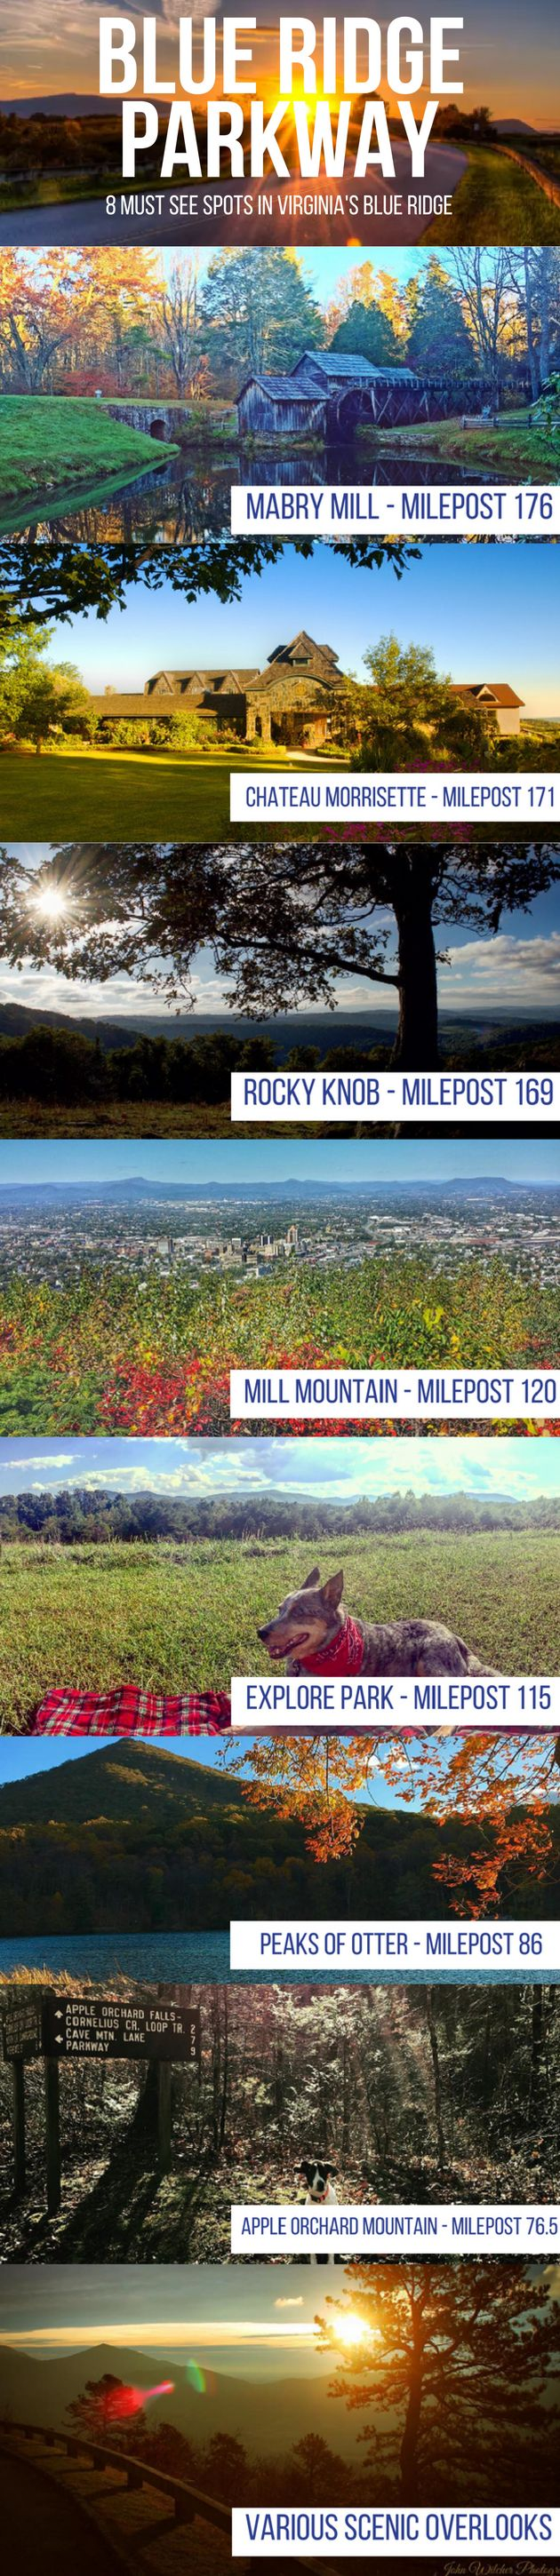 8 Must See Spots on the Blue Ridge Parkway in Virginia's Blue Ridge Mountains